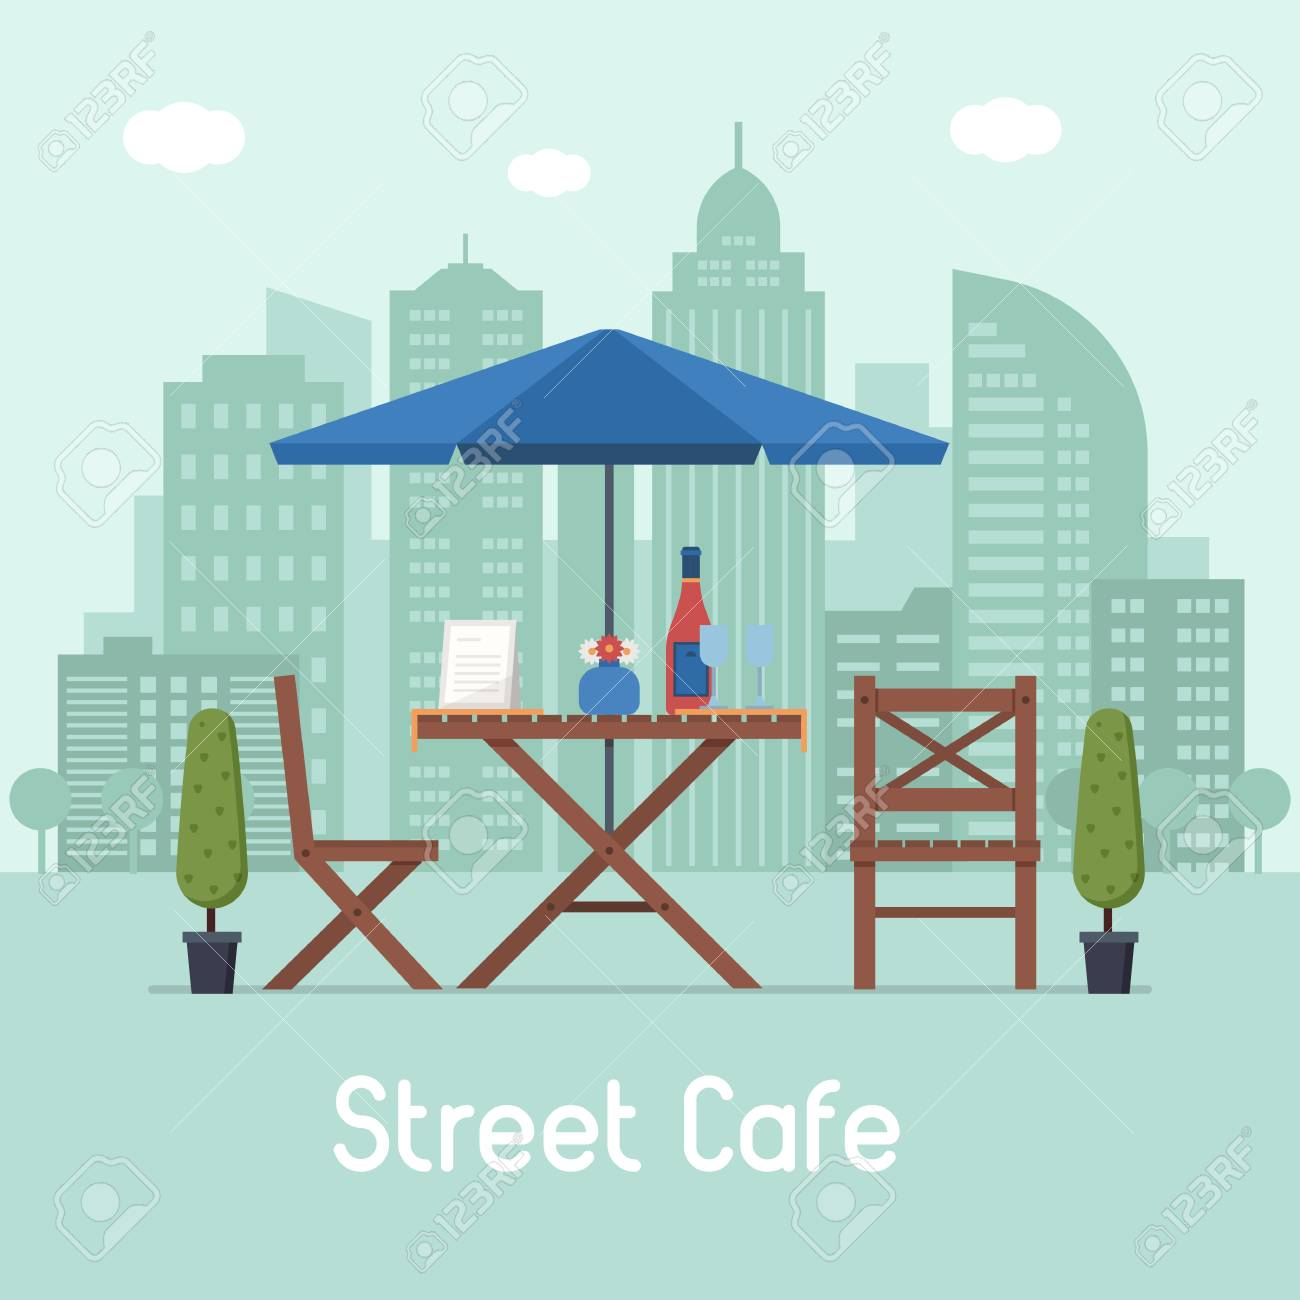 Summer Outdoor Cafe Terrace With Seats Under Parasol On Modern Royalty Free Cliparts Vectors And Stock Illustration Image 73788339